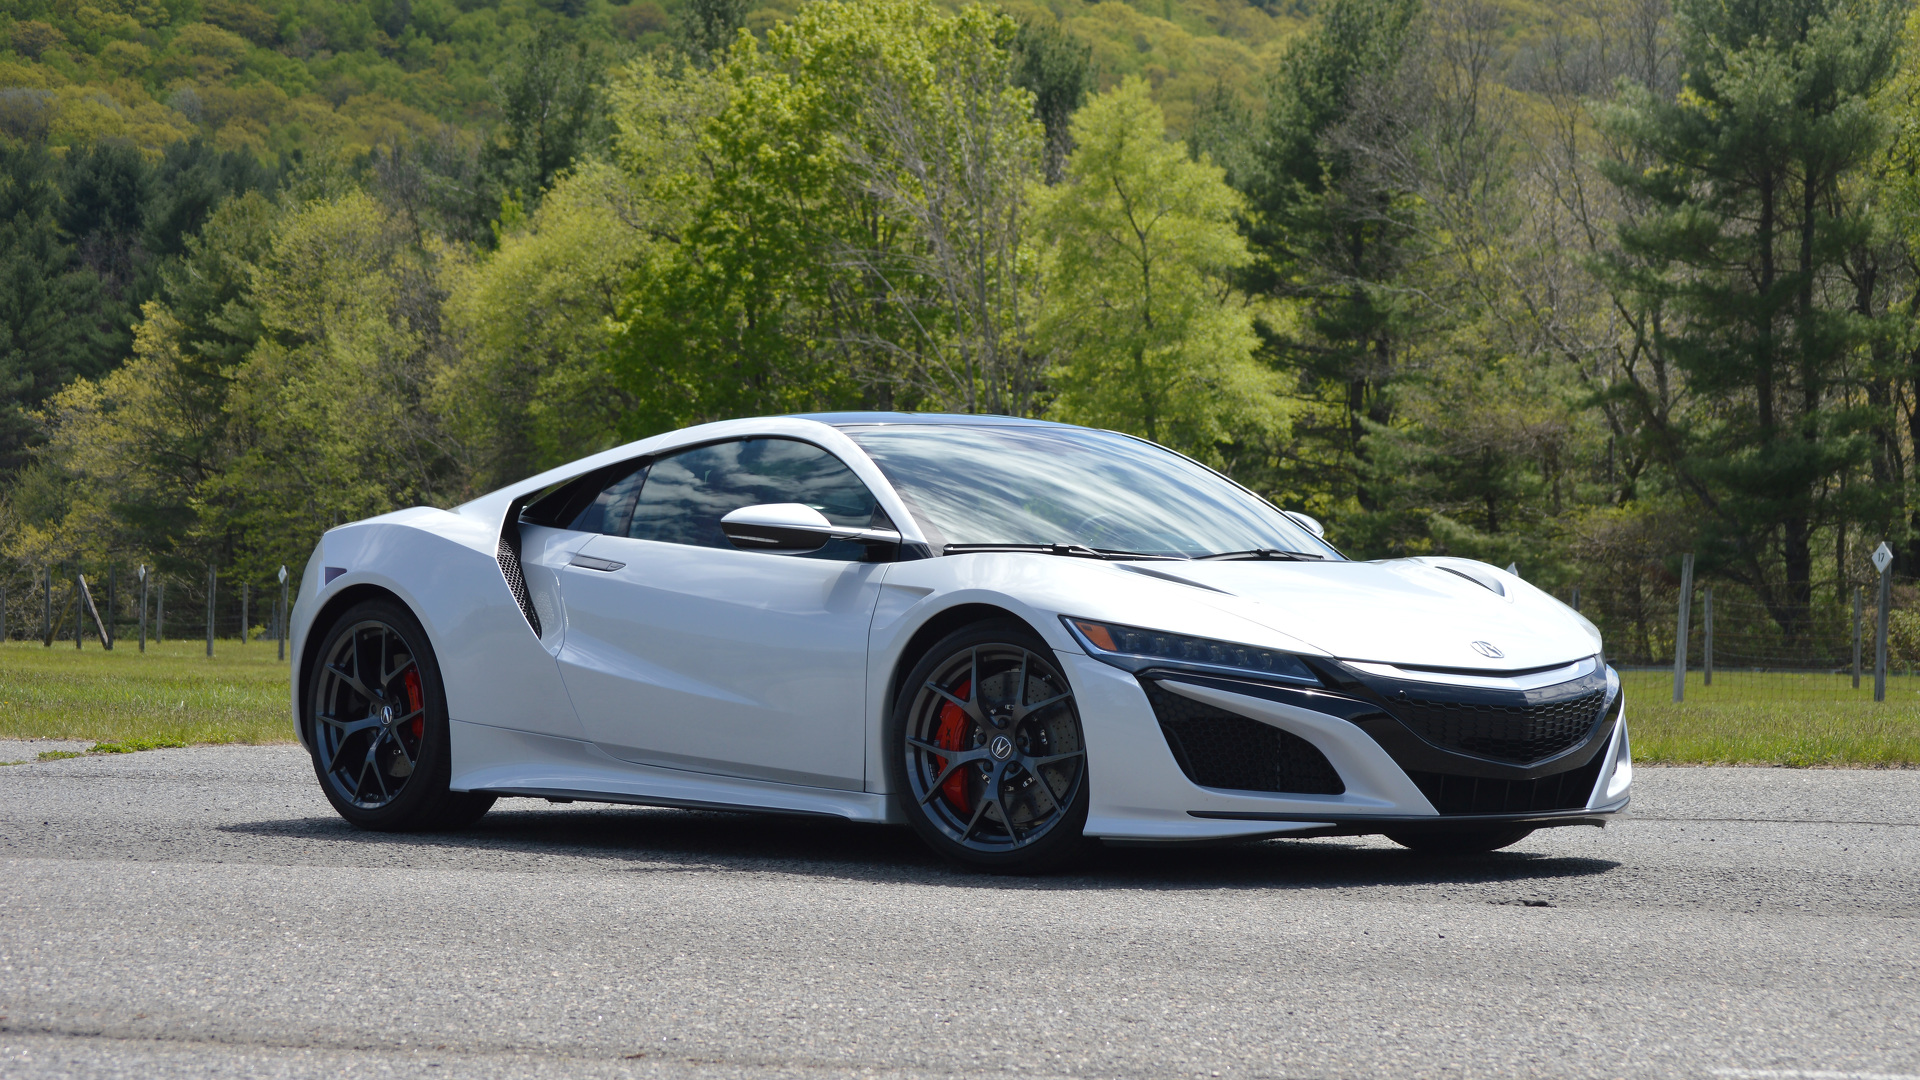 2017 acura nsx 2017 acura nsx tinadh com 2017 Acura NSX Engine at n-0.co